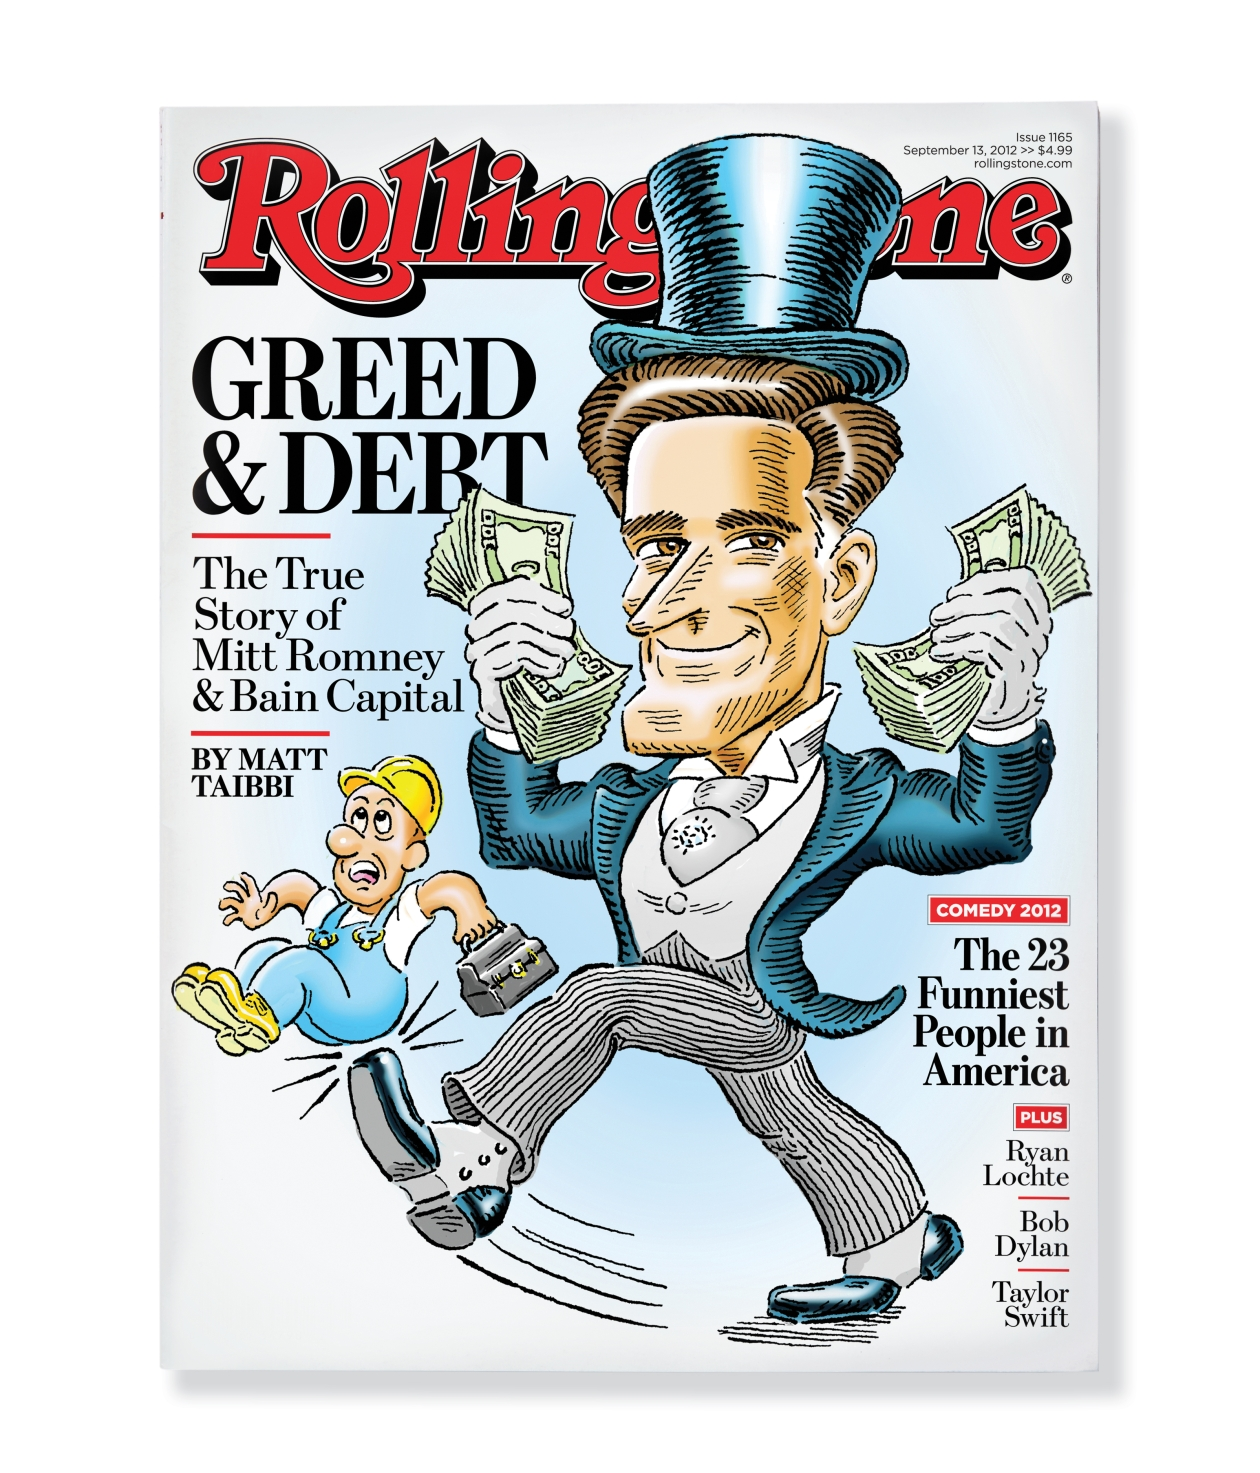 Nixon Marble Face: Illustrator Robert Grossman's 'Rolling Stone' Covers